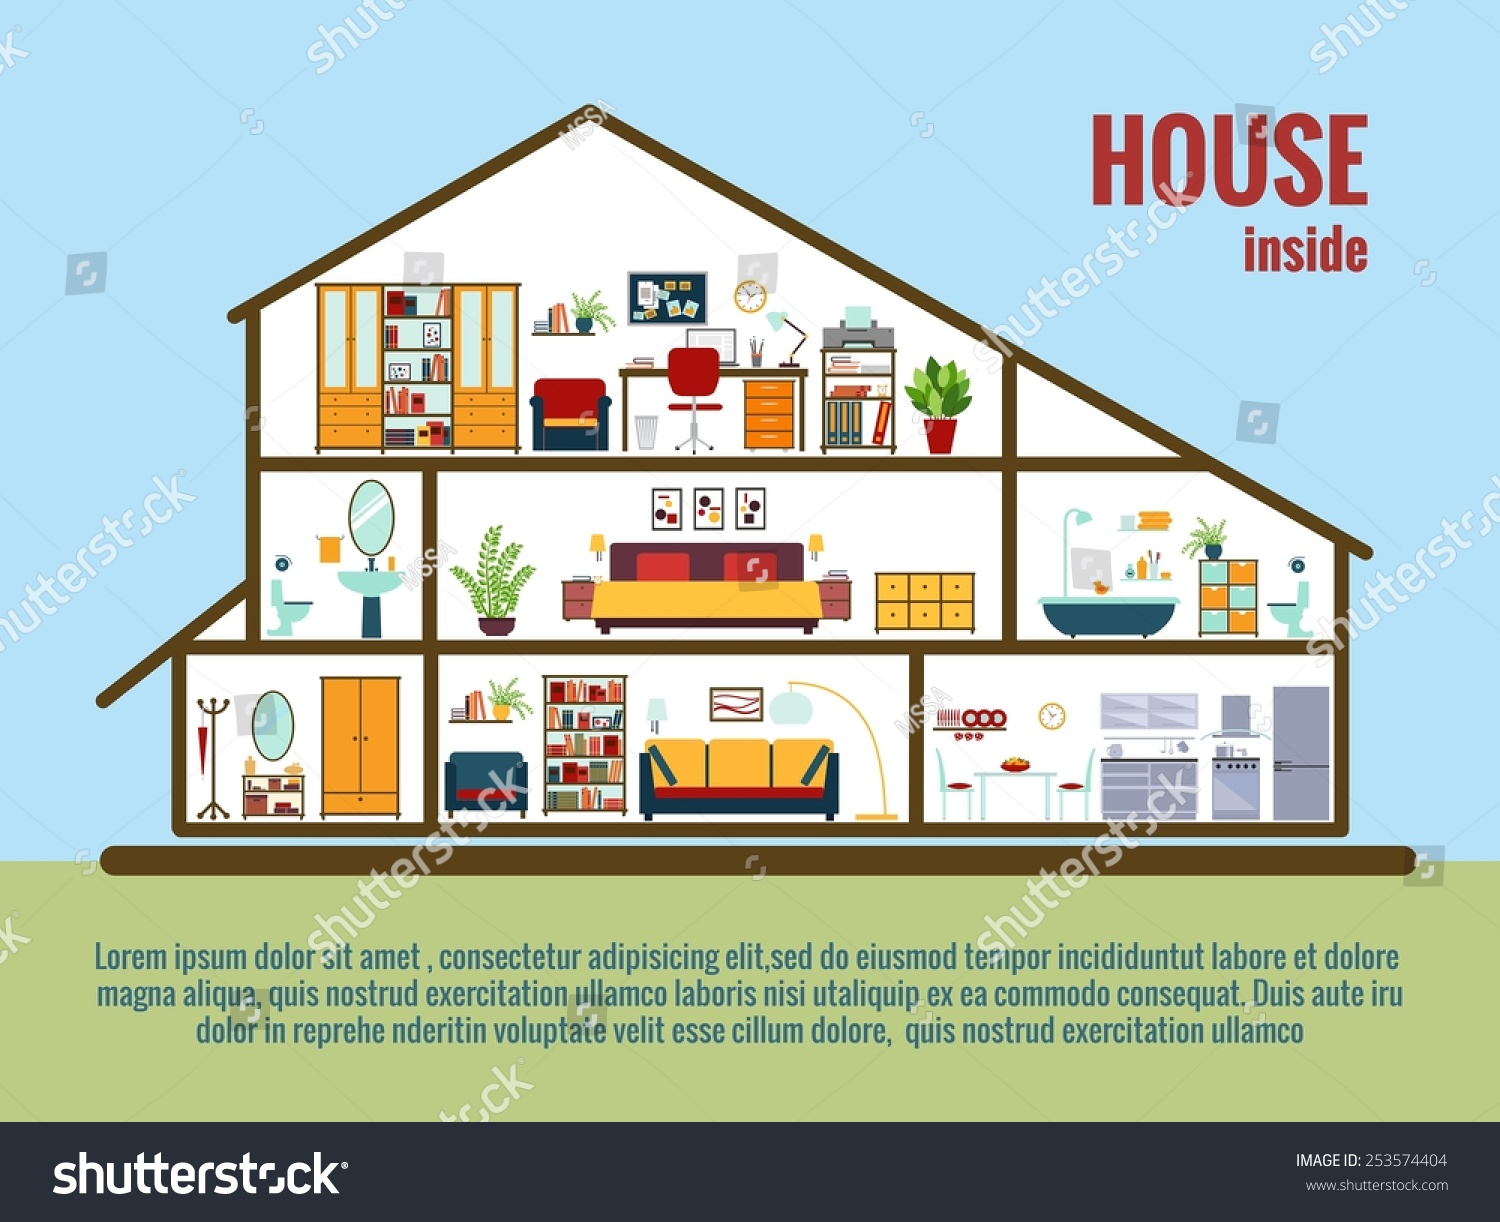 All rooms in the house rooms of homes vector art image illustration - Vector House Interior House Plan Cross Sectional View Room And Bath Kitchen